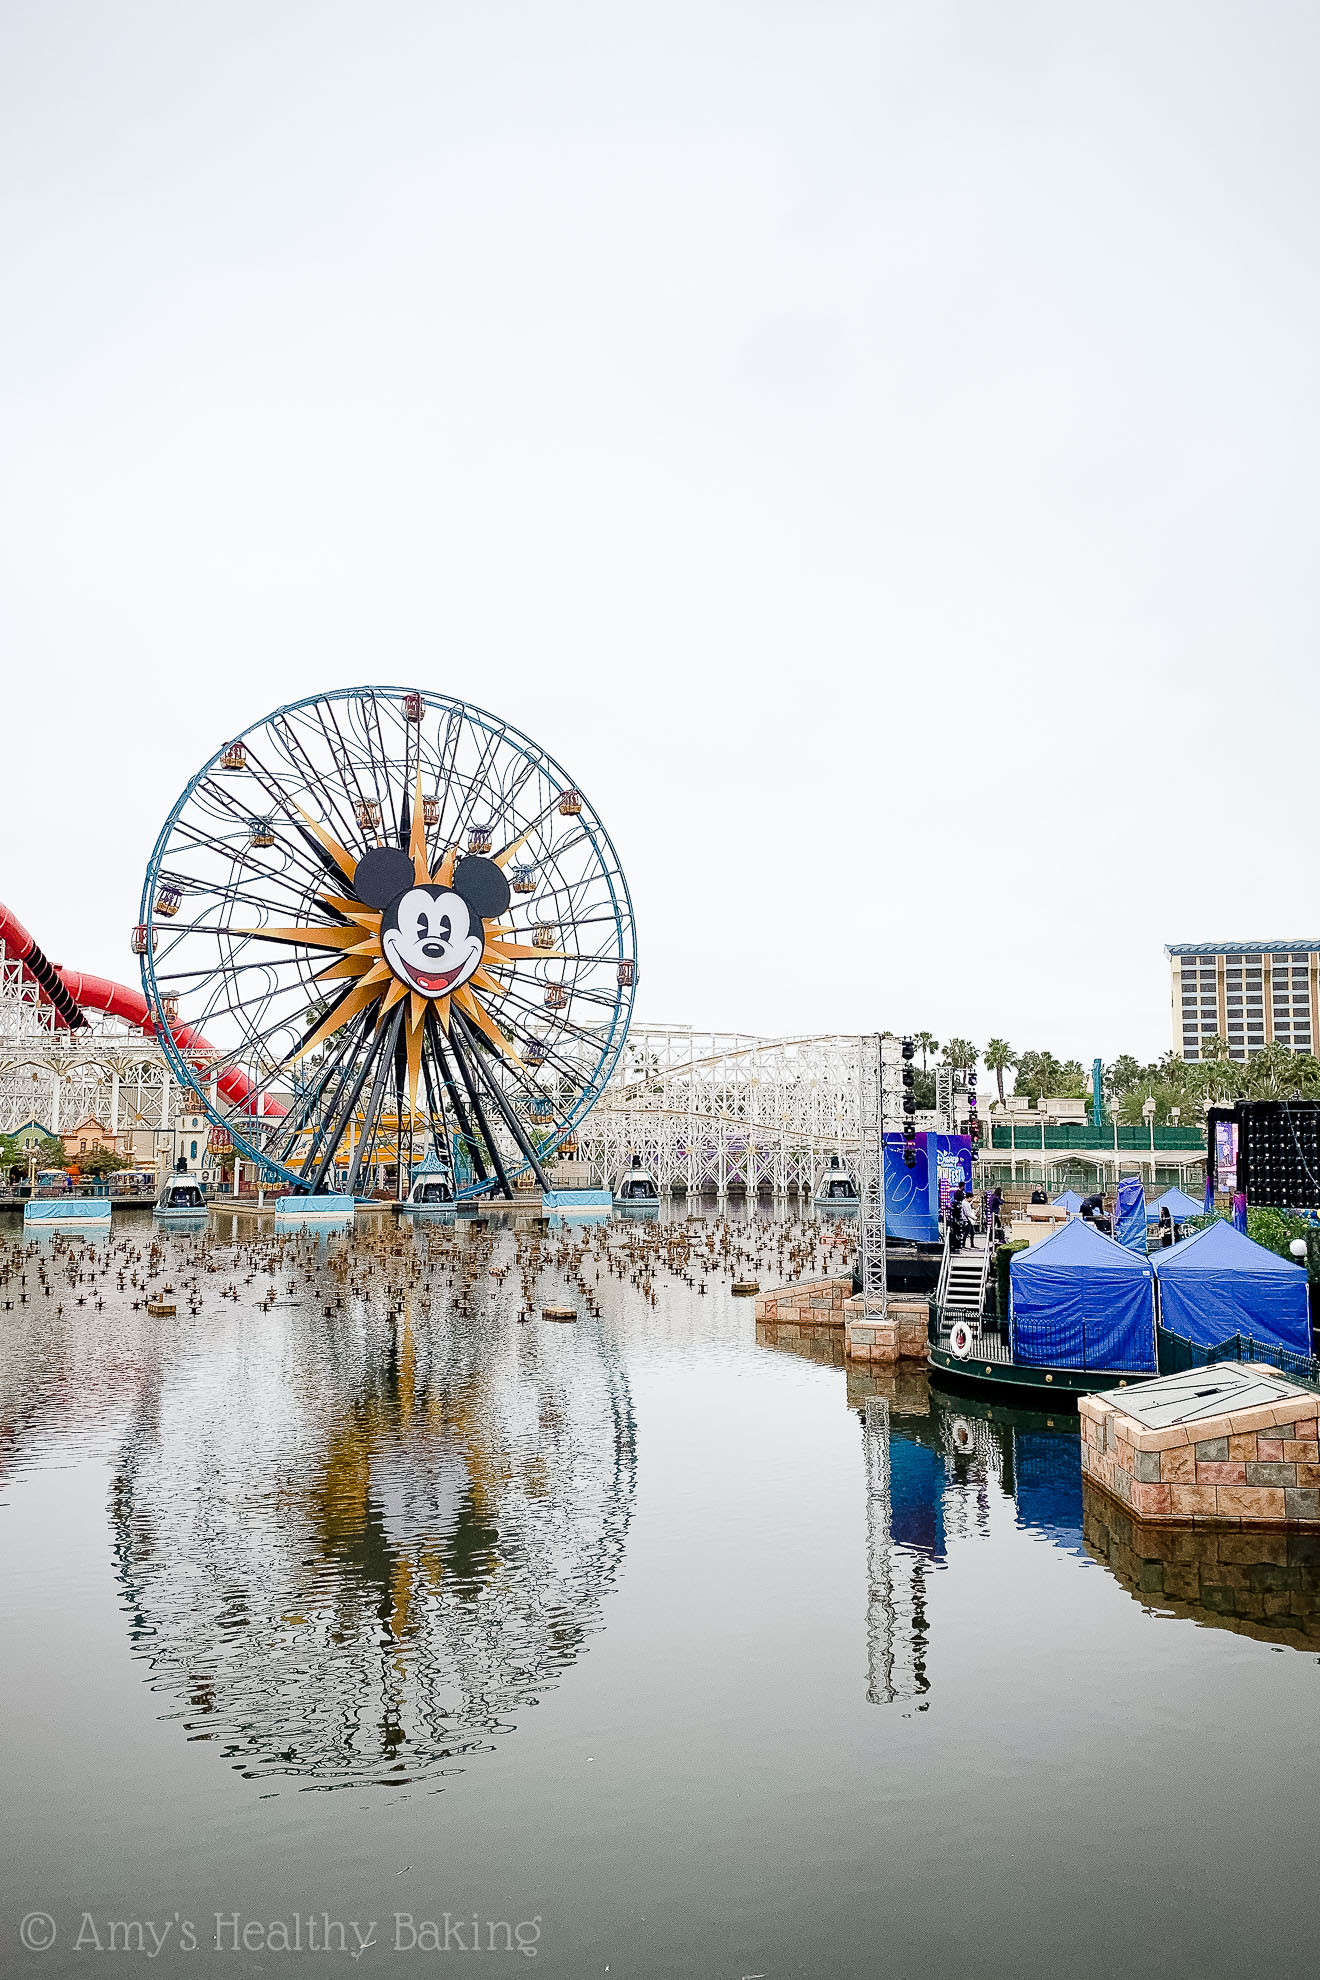 Pixar Pier and the Mickey Mouse Ferris Wheel in California Adventure, Anaheim